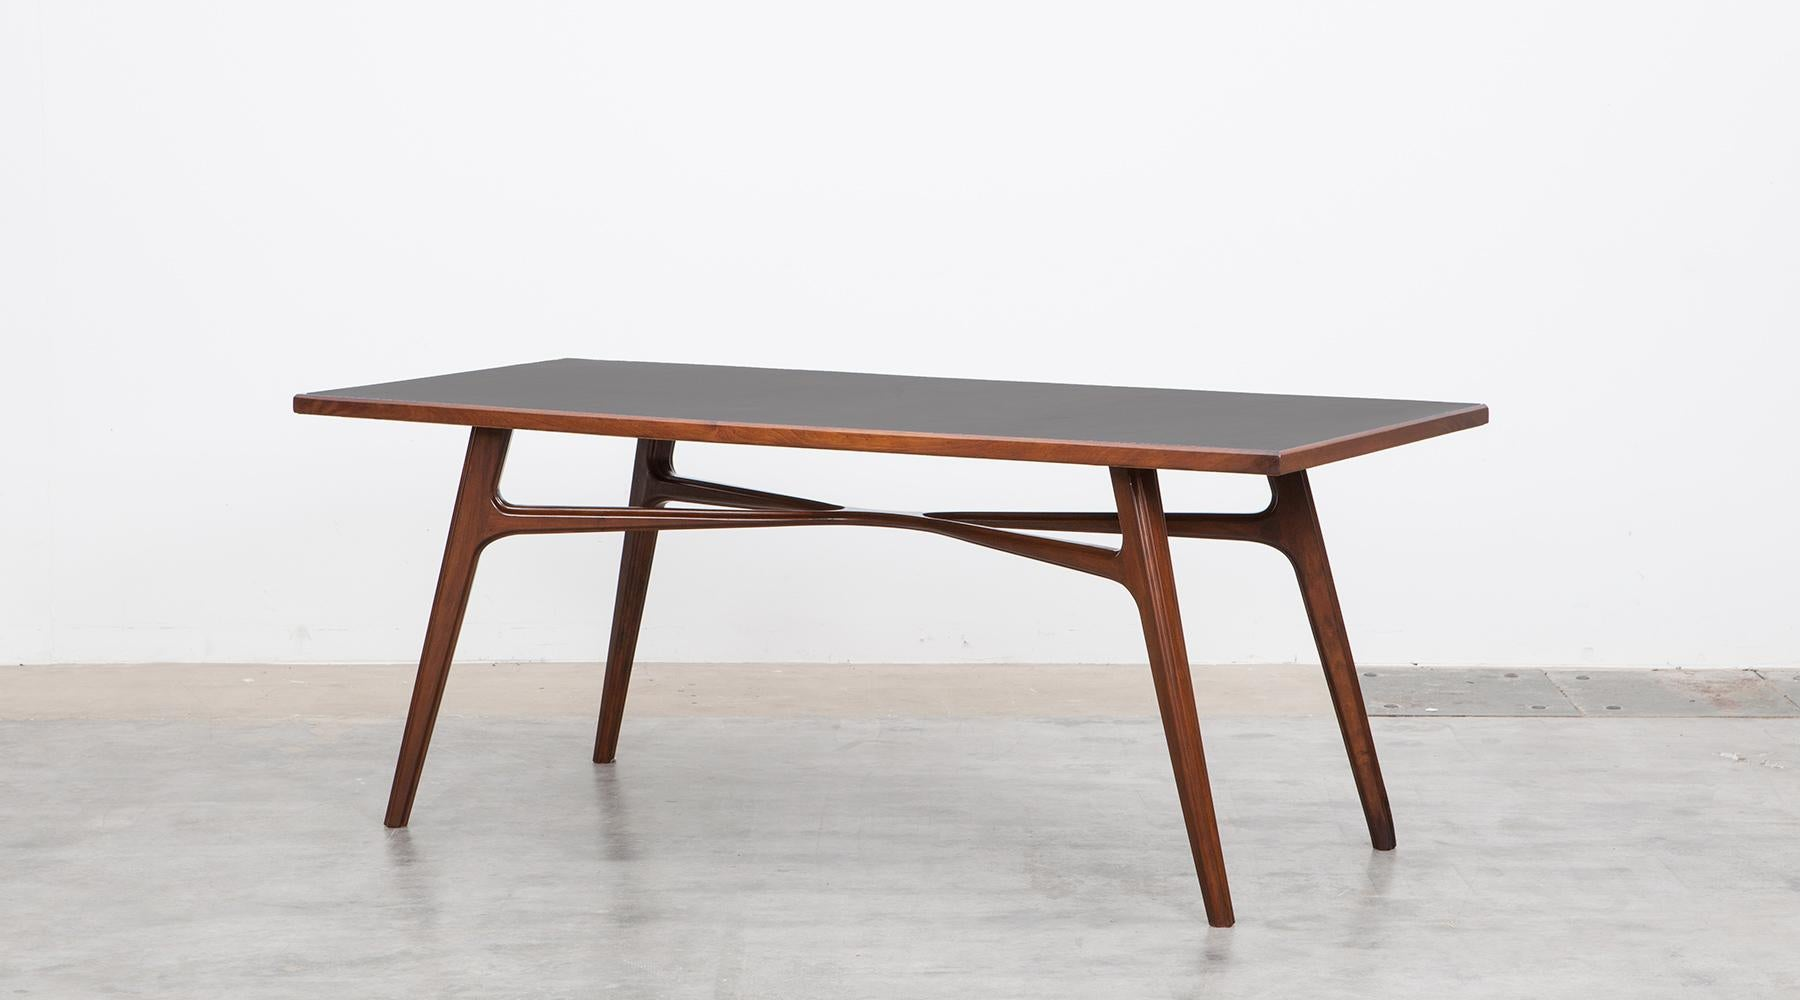 Dining Table With Linoleum Top, Walnut Base, Italy, 1955. Incredible Italian  Dining